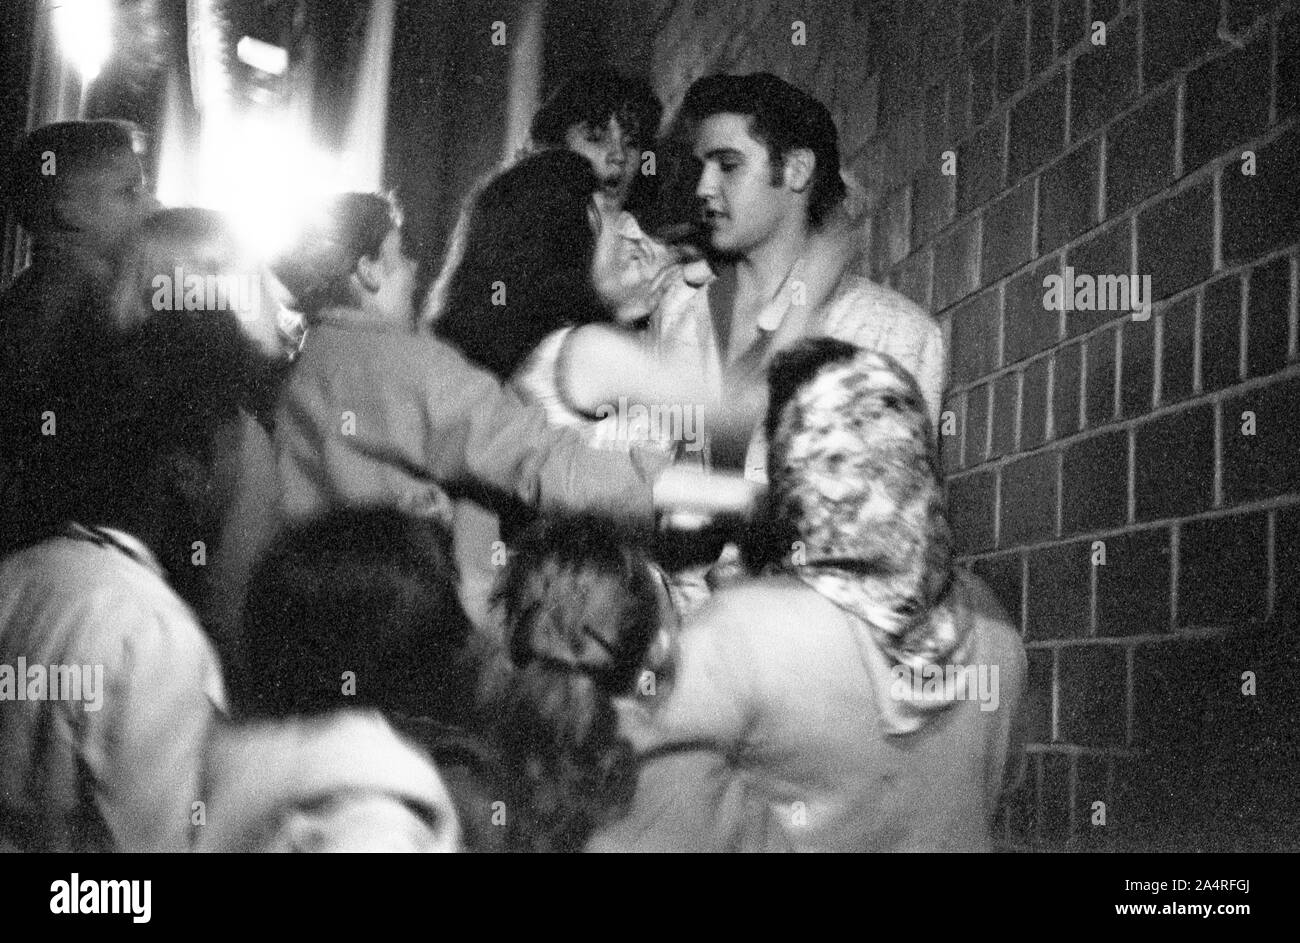 Elvis Presley being swarmed by fans at the University of Dayton Fieldhouse, May 27, 1956. Stock Photo